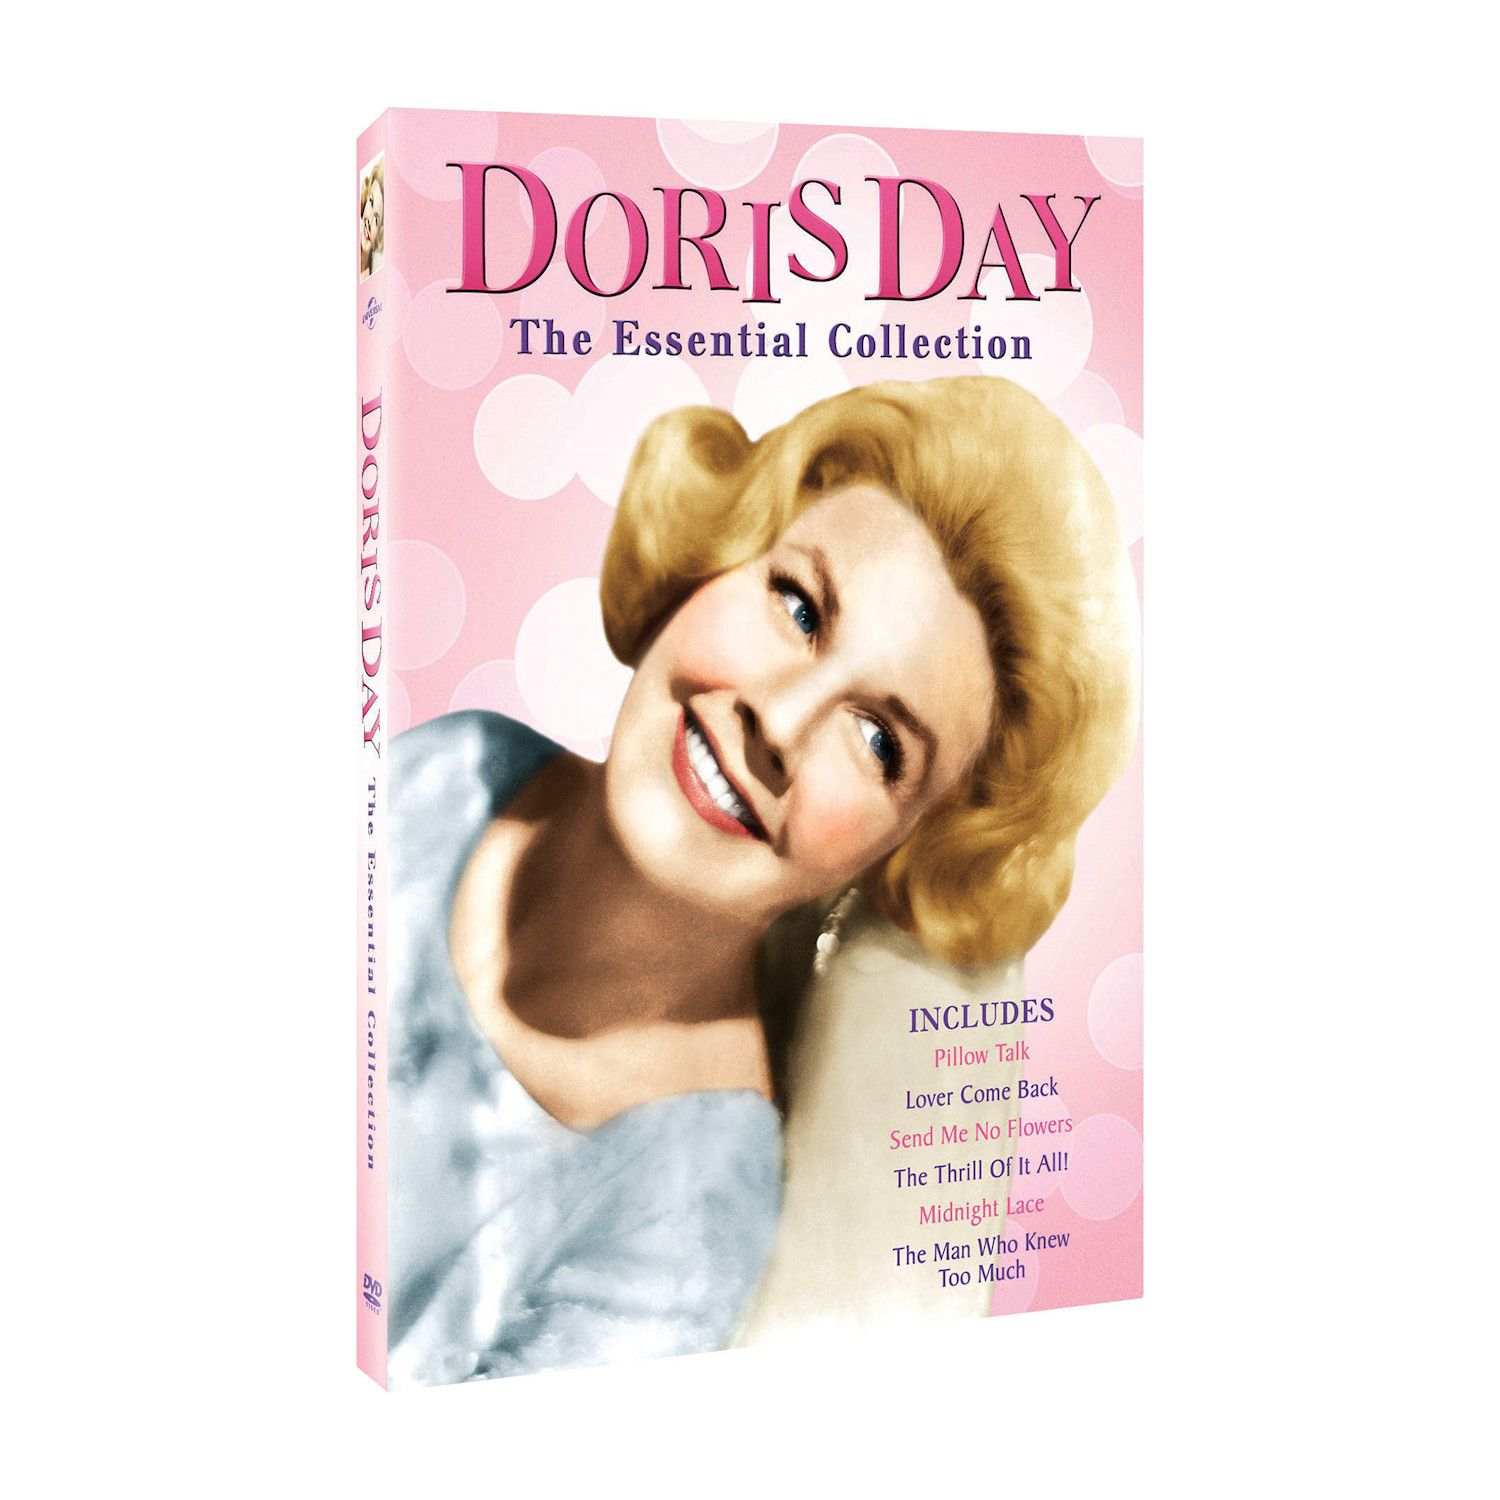 Doris Day: The Essential Collection Dvd #hollywoodlegends